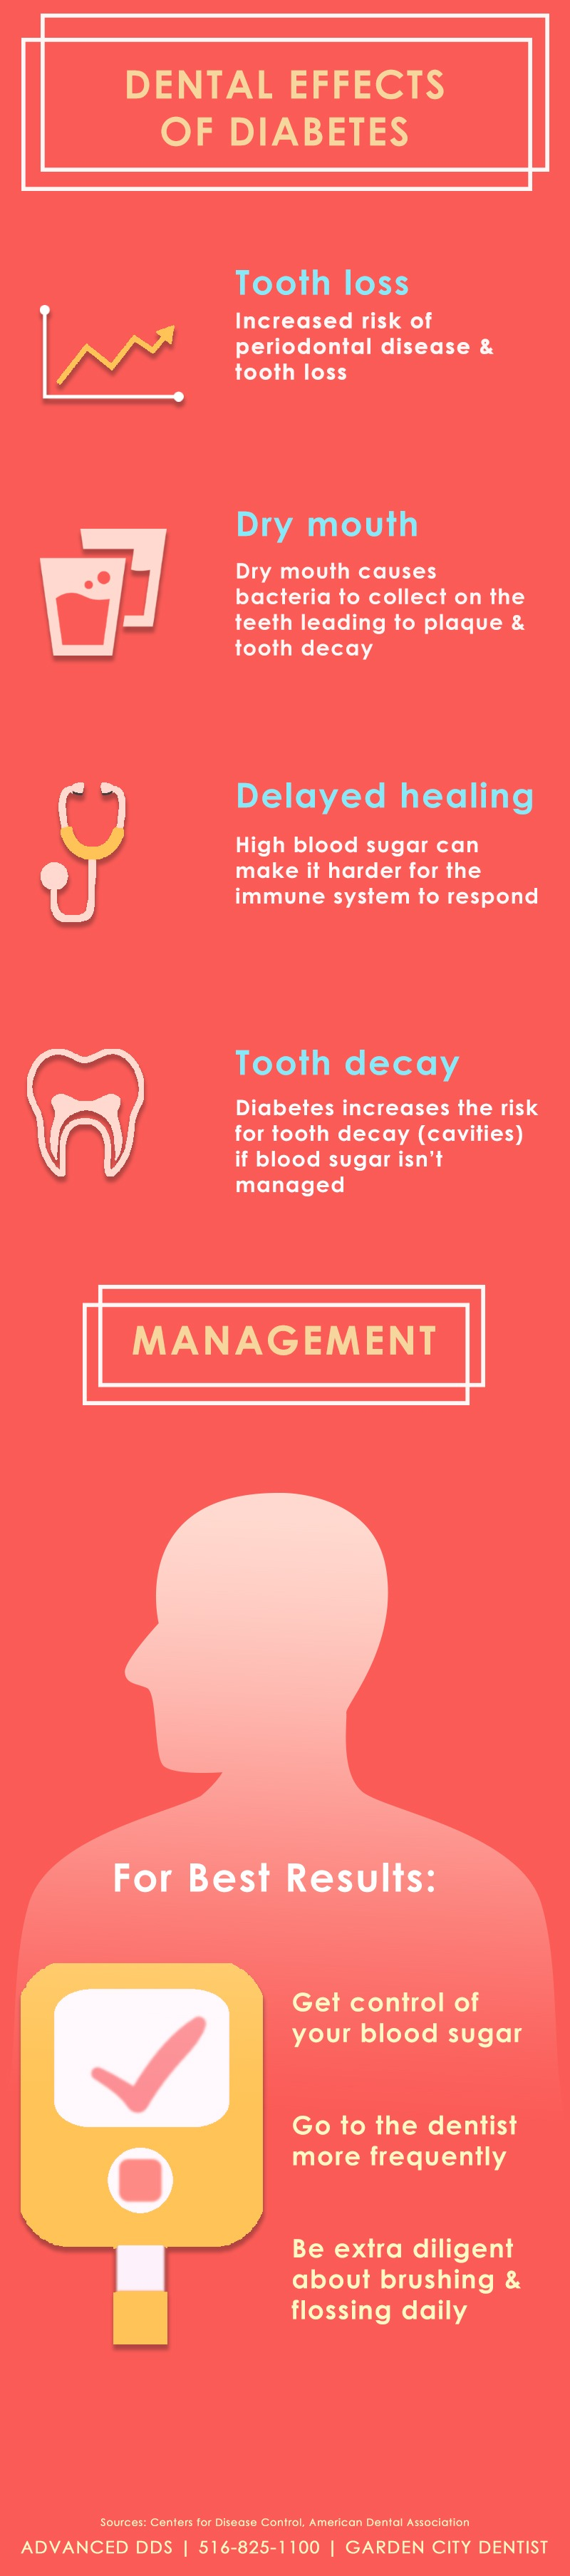 diabetes and dentistry